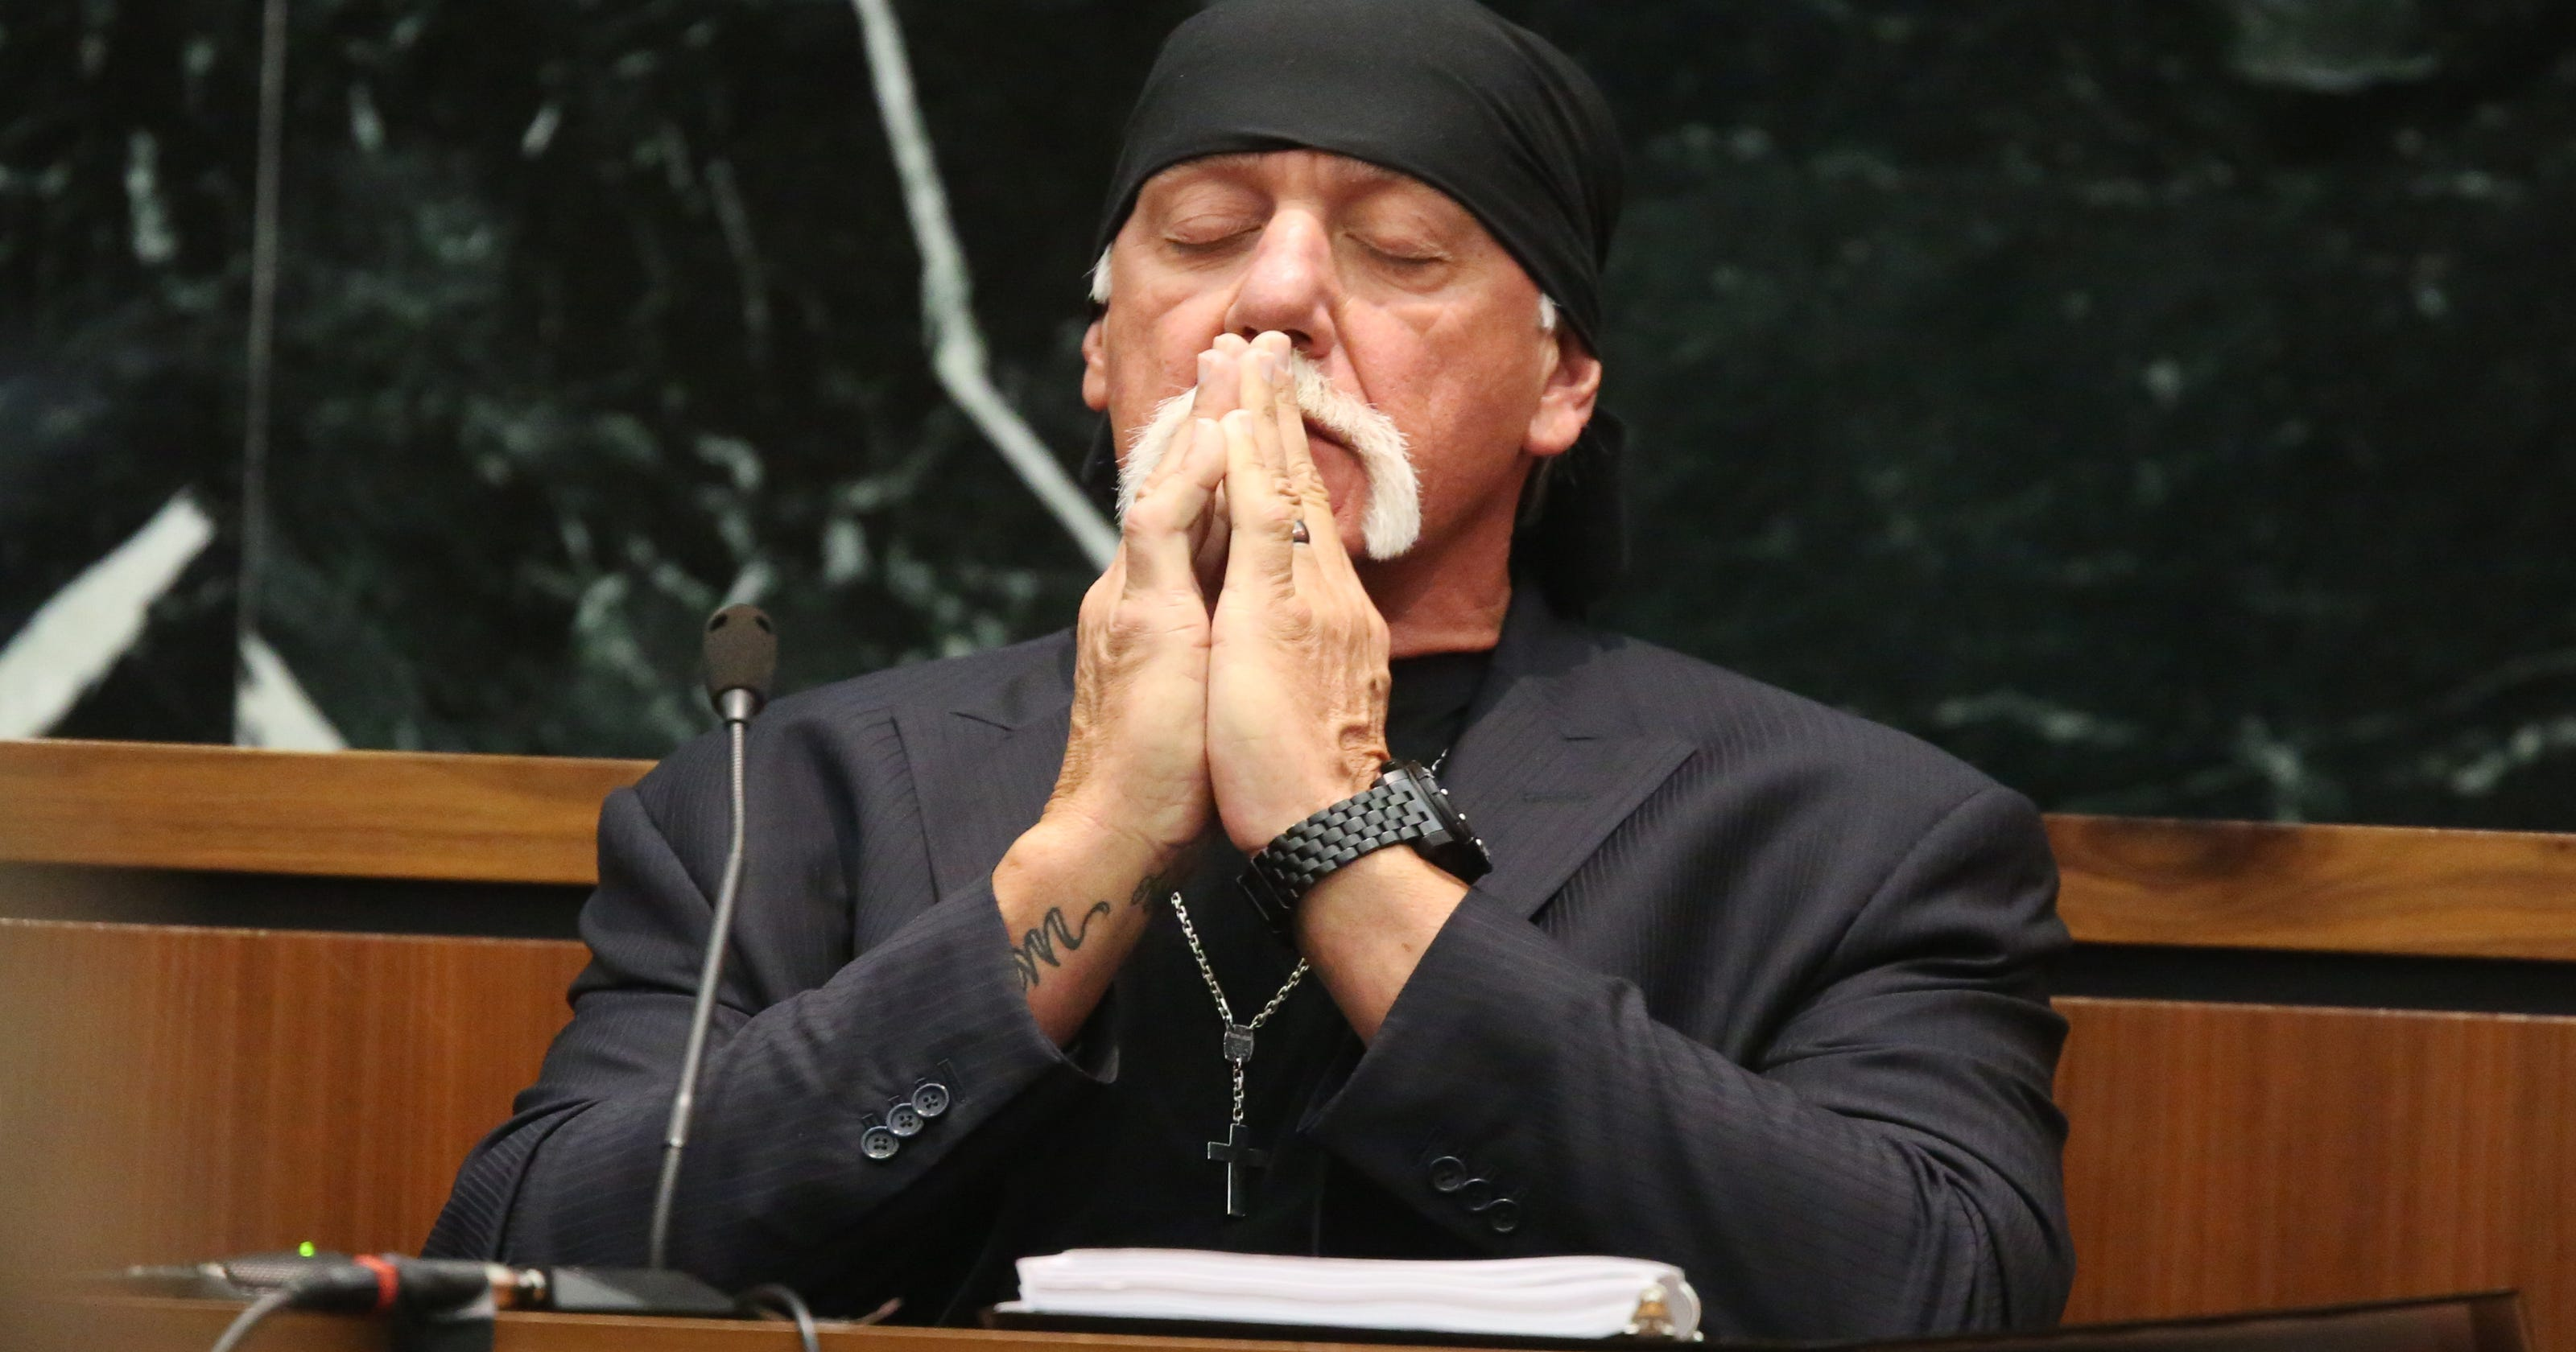 Will Hulk Hogans Sex Tape Award Kill Gawker